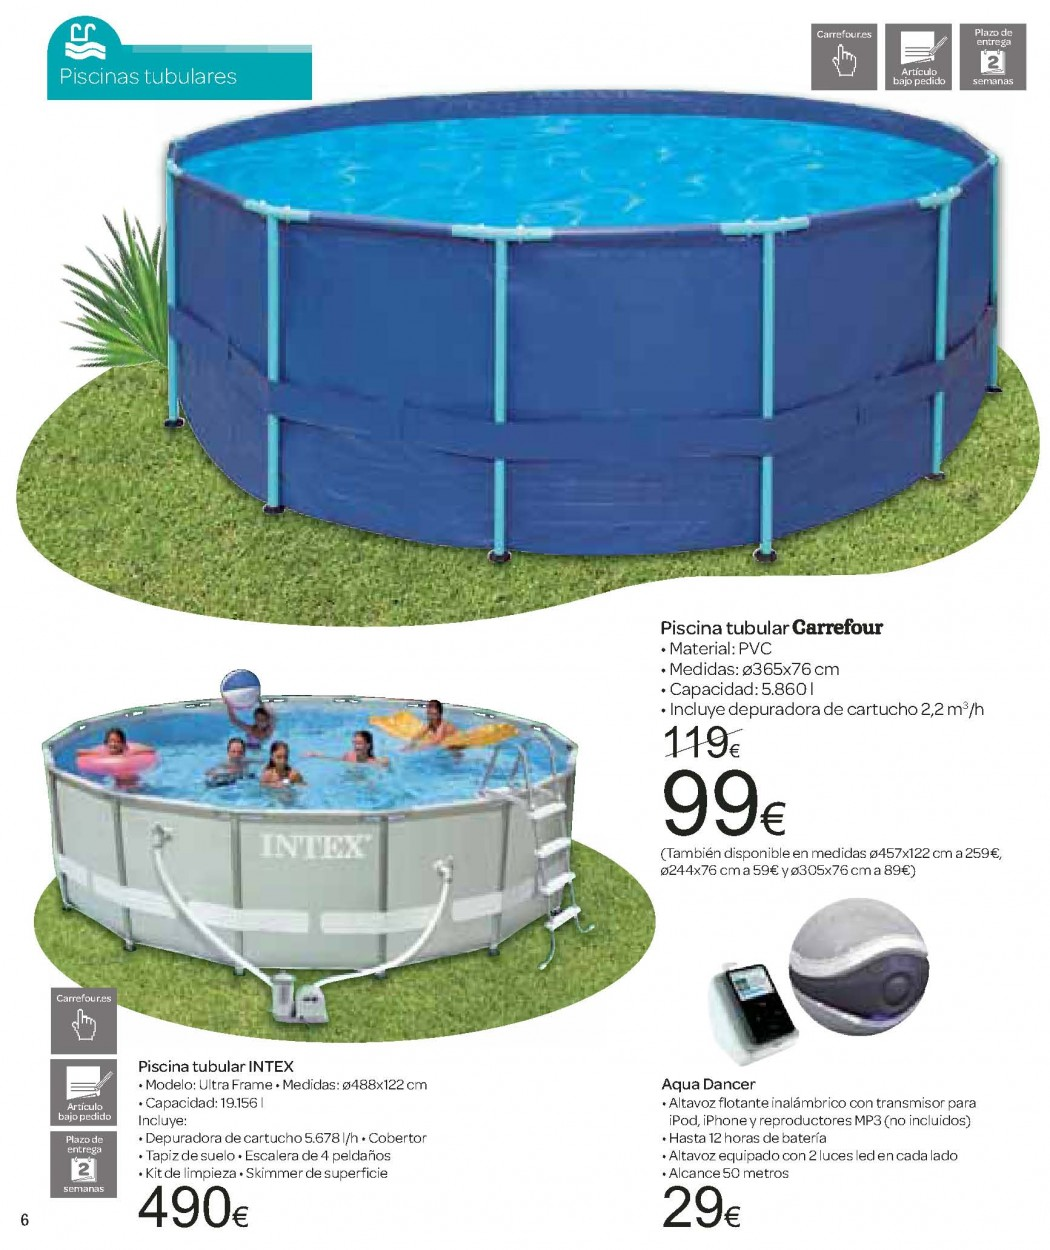 Catalogo carrefour junio 2012 especial piscinas y jardin for Piscinas hipercor catalogo